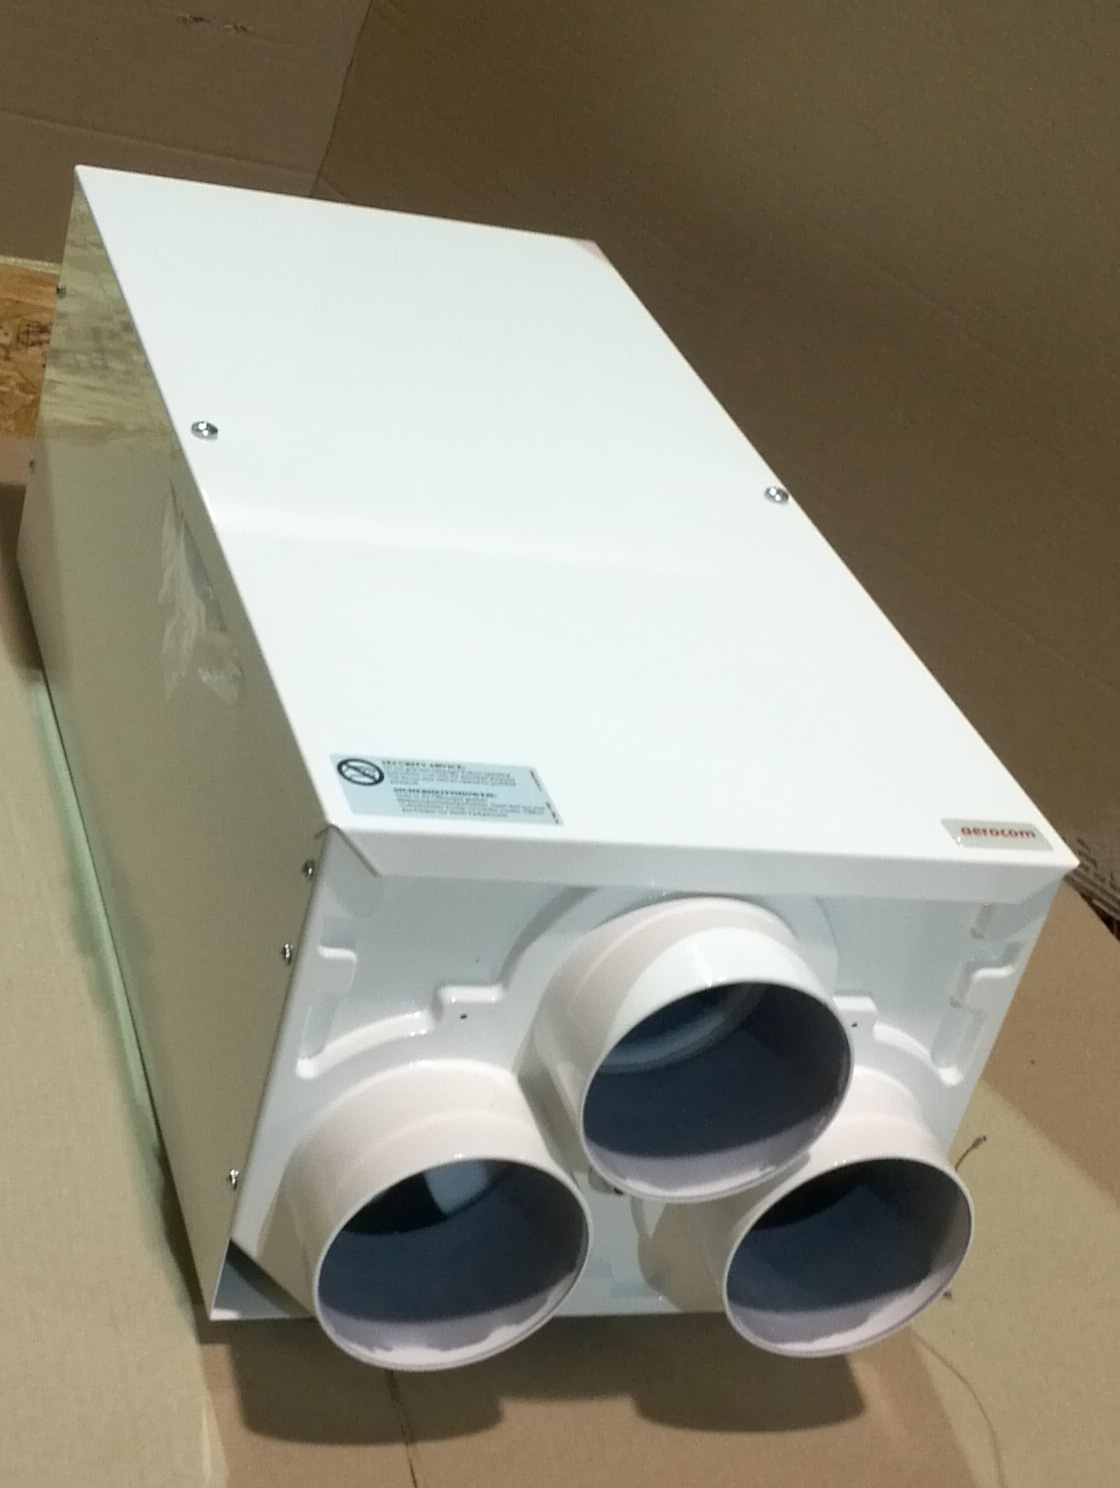 Diverters for pneumatic tube systems aerocom usa